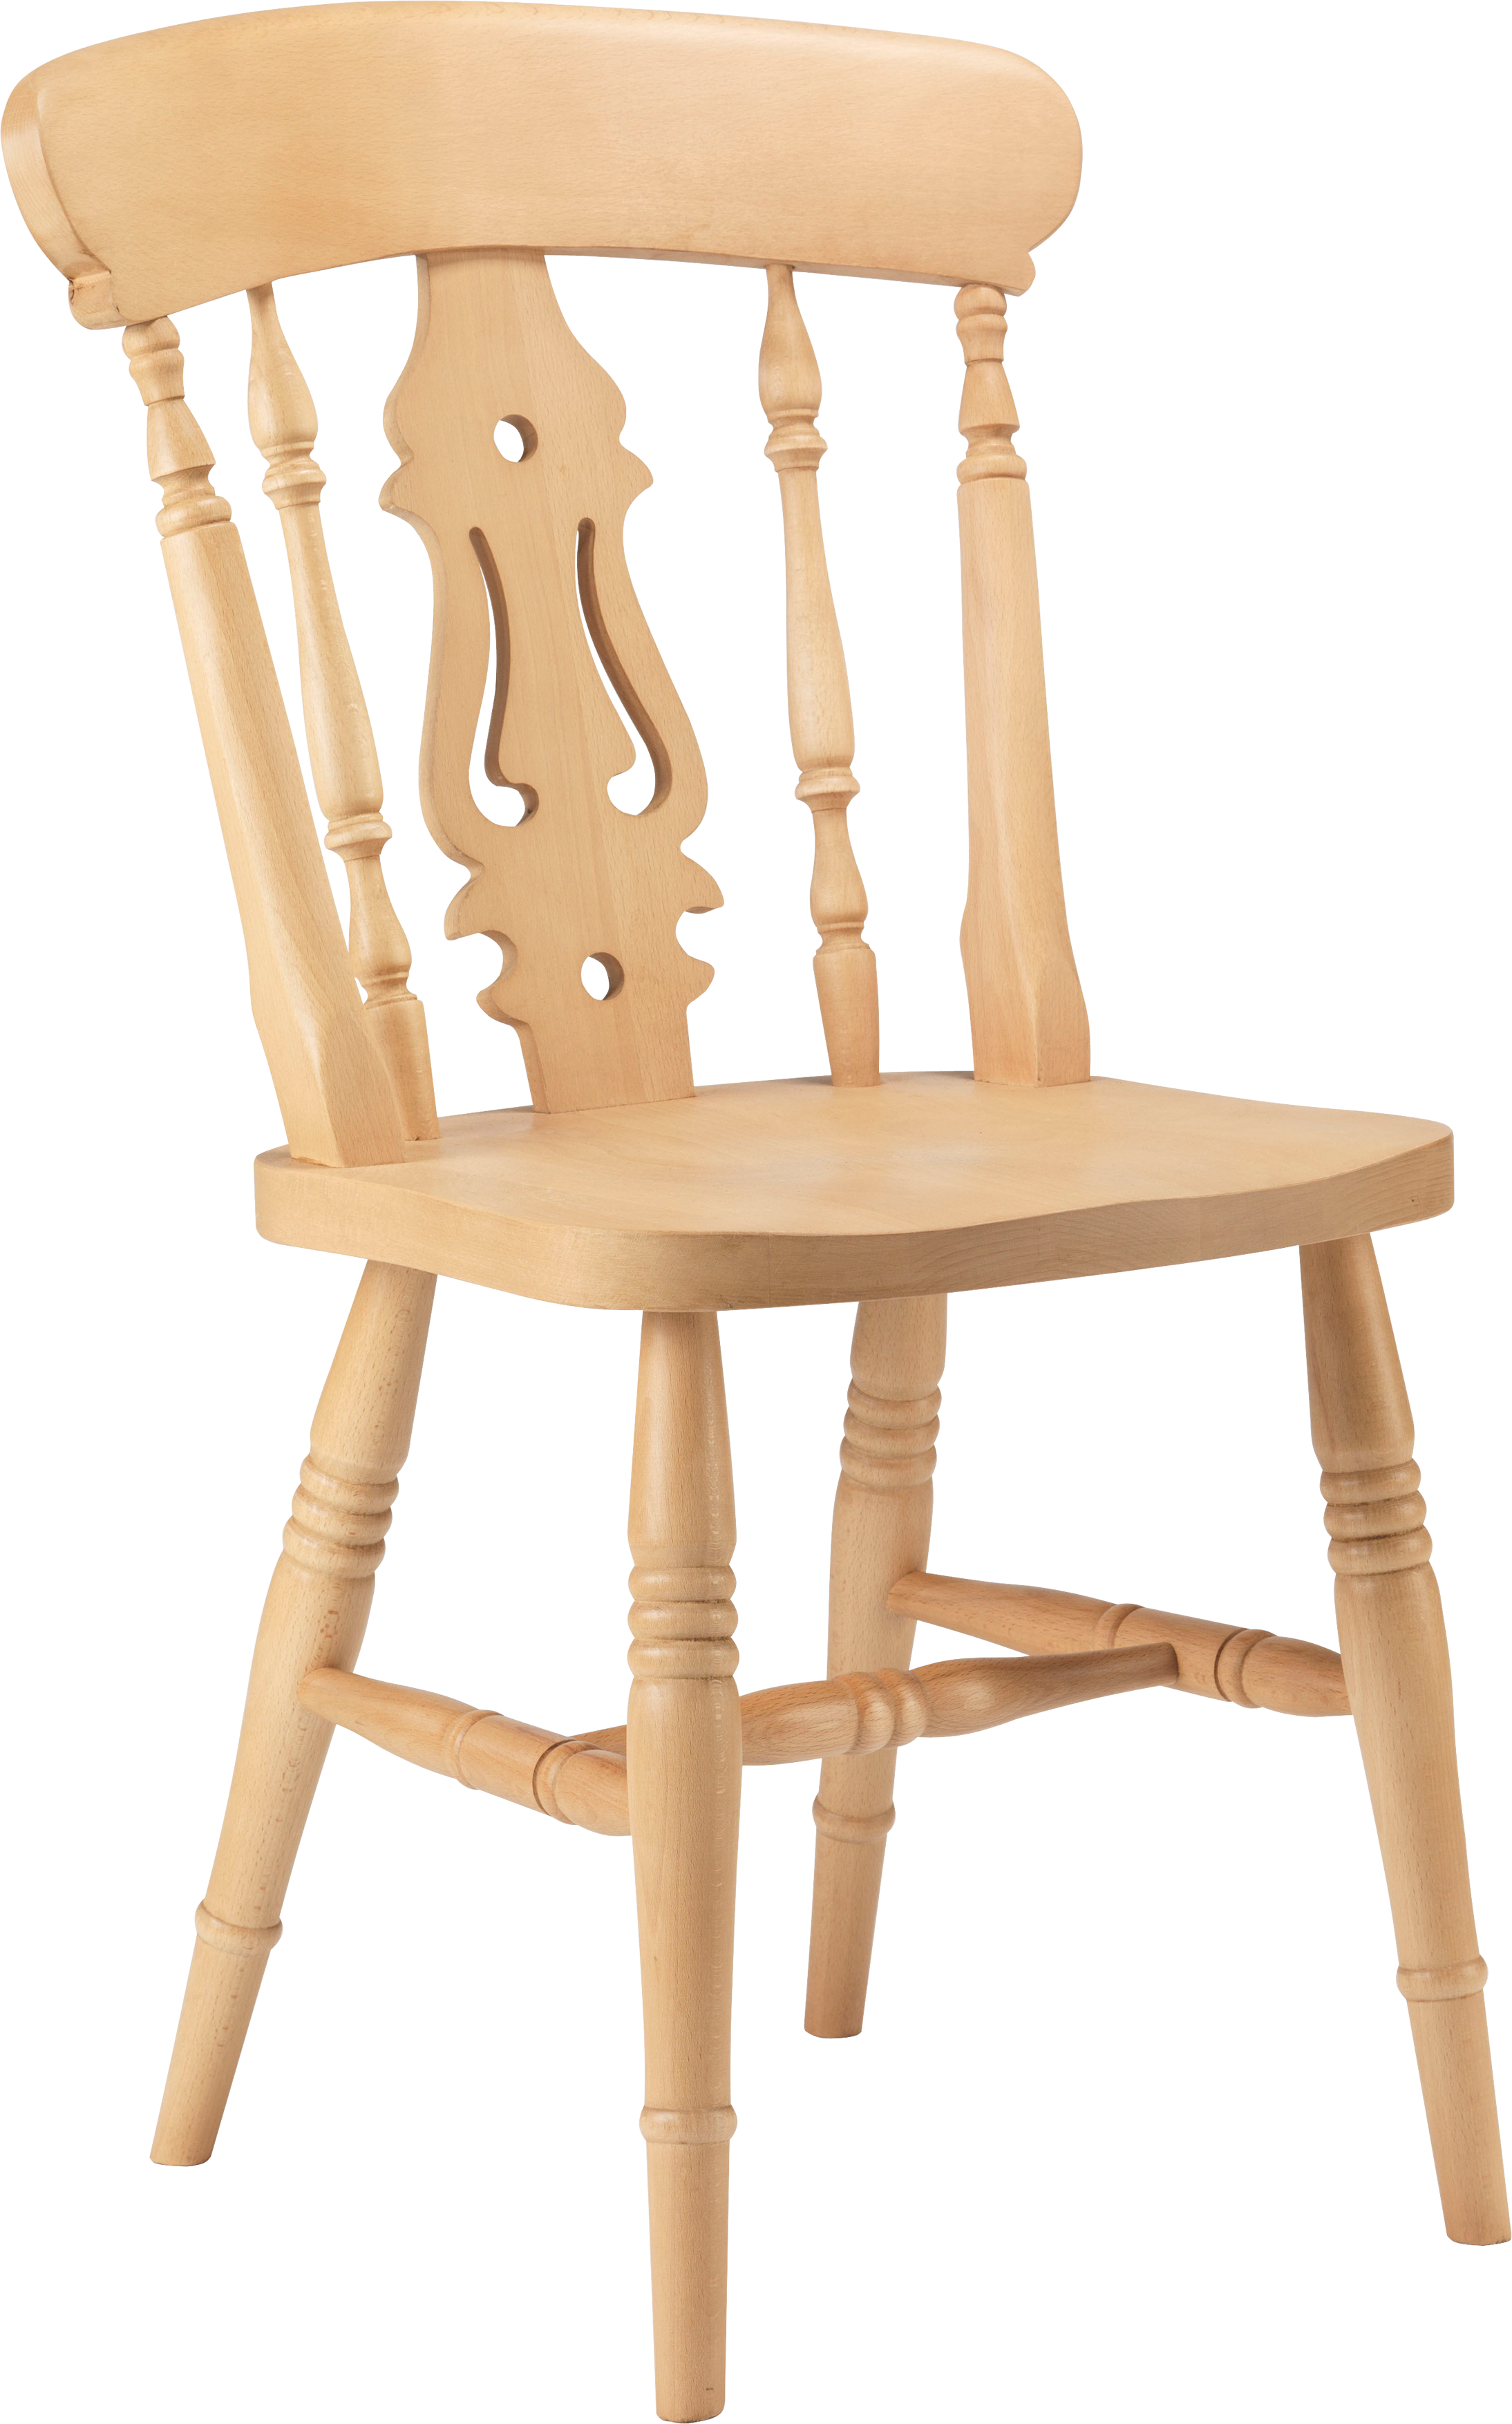 uploads chair chair PNG6861 24